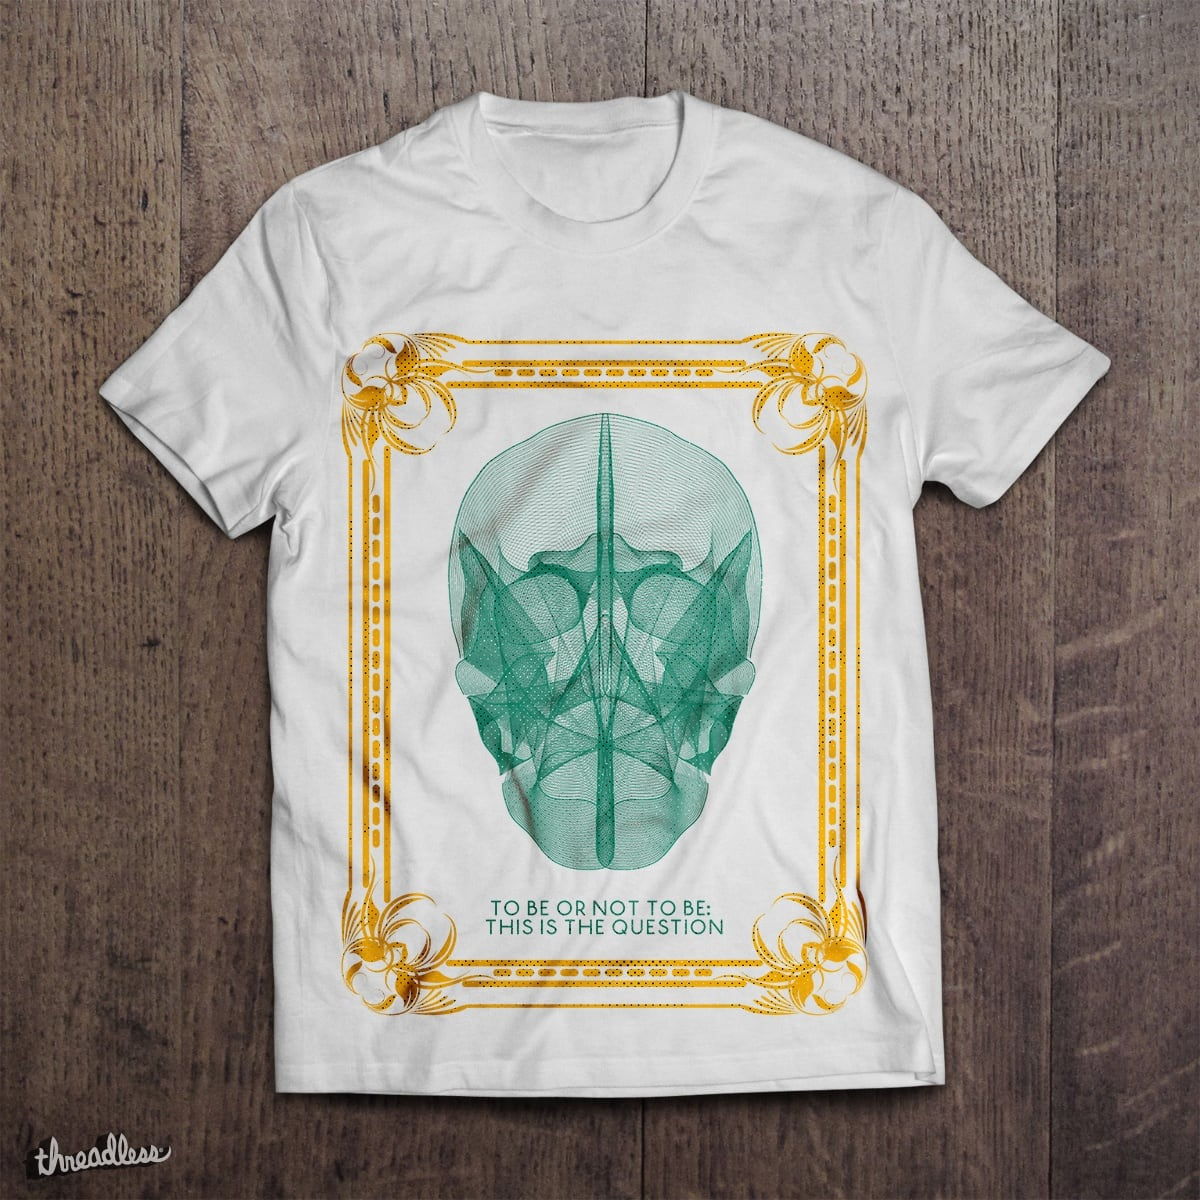 To be or not to be: this is the question by silviuchiriac on Threadless